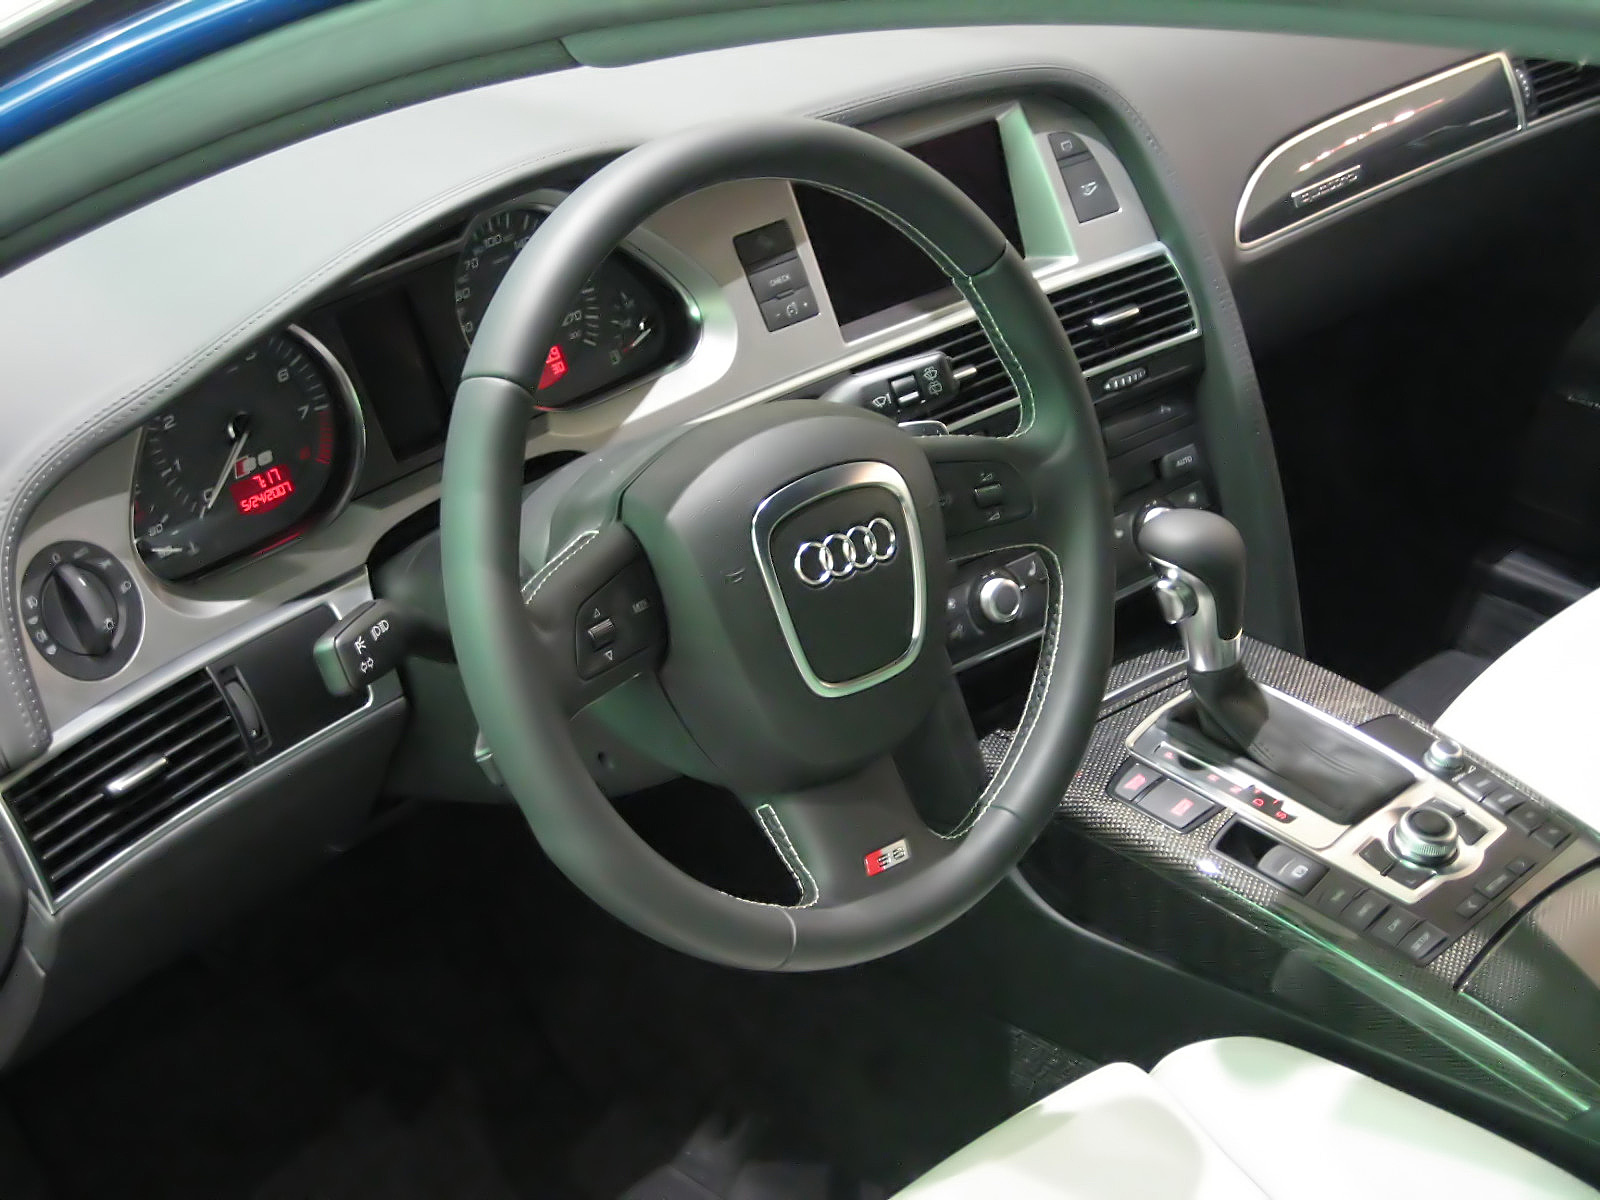 File Audi S Avant InteriorJPG Wikimedia Commons - Audi s6 interior